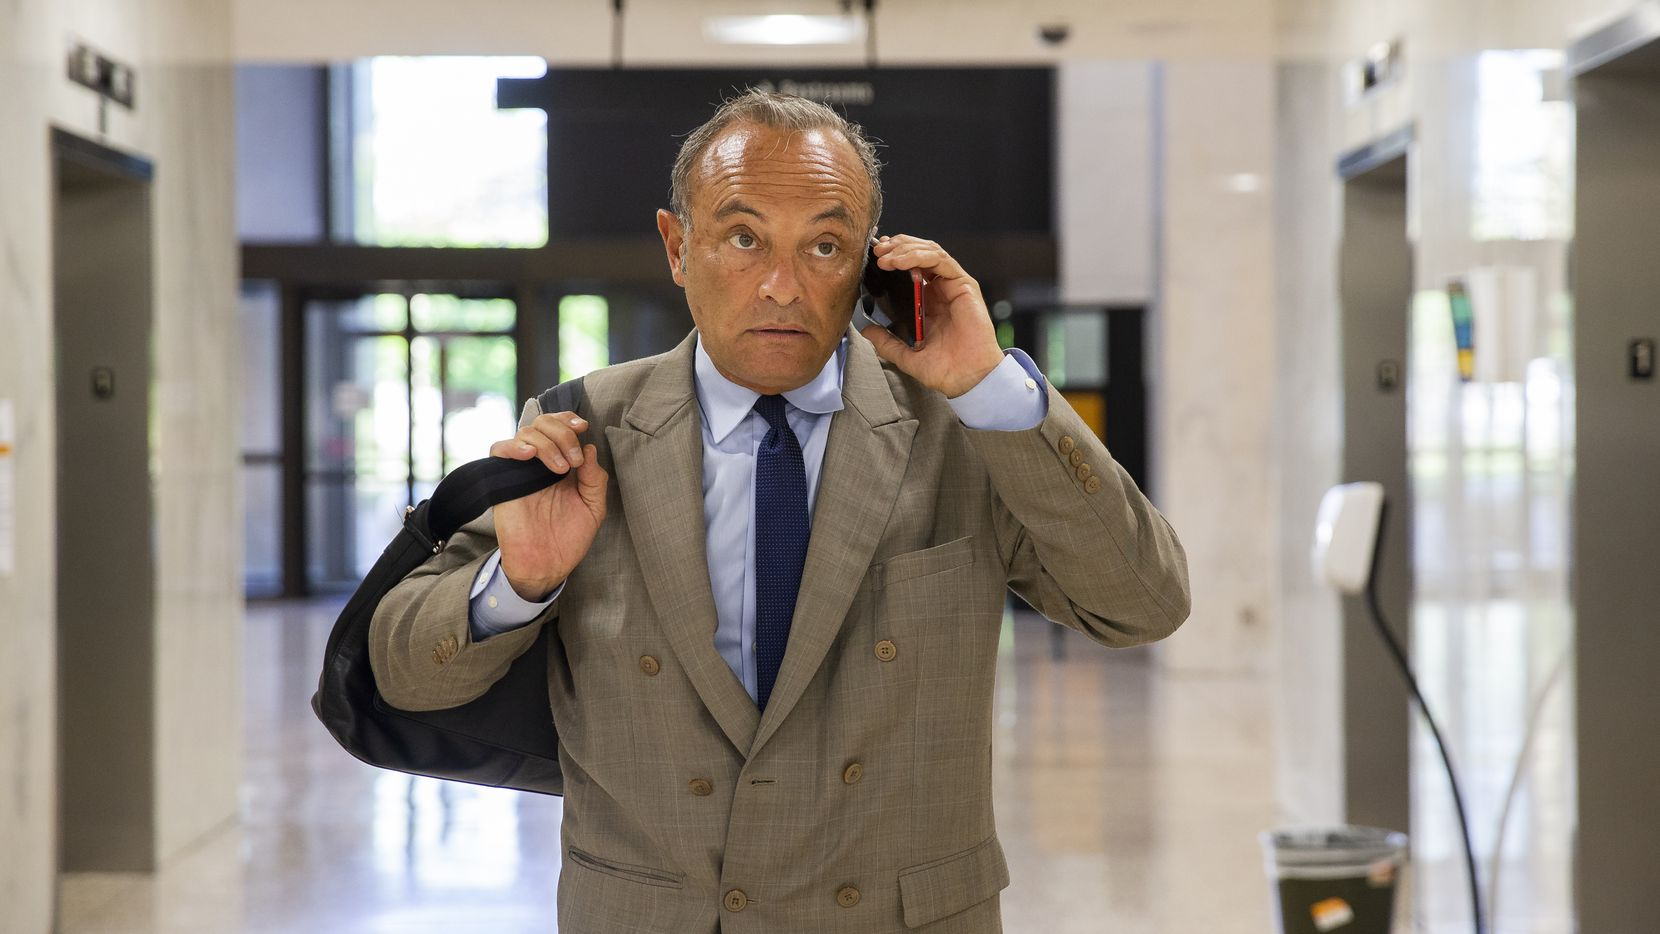 Immigration attorney Fernando Dubove talks to a client after filing court documents in a nearly empty Earle Cabell Federal Building Thursday morning on March 26, 2020 in Dallas.